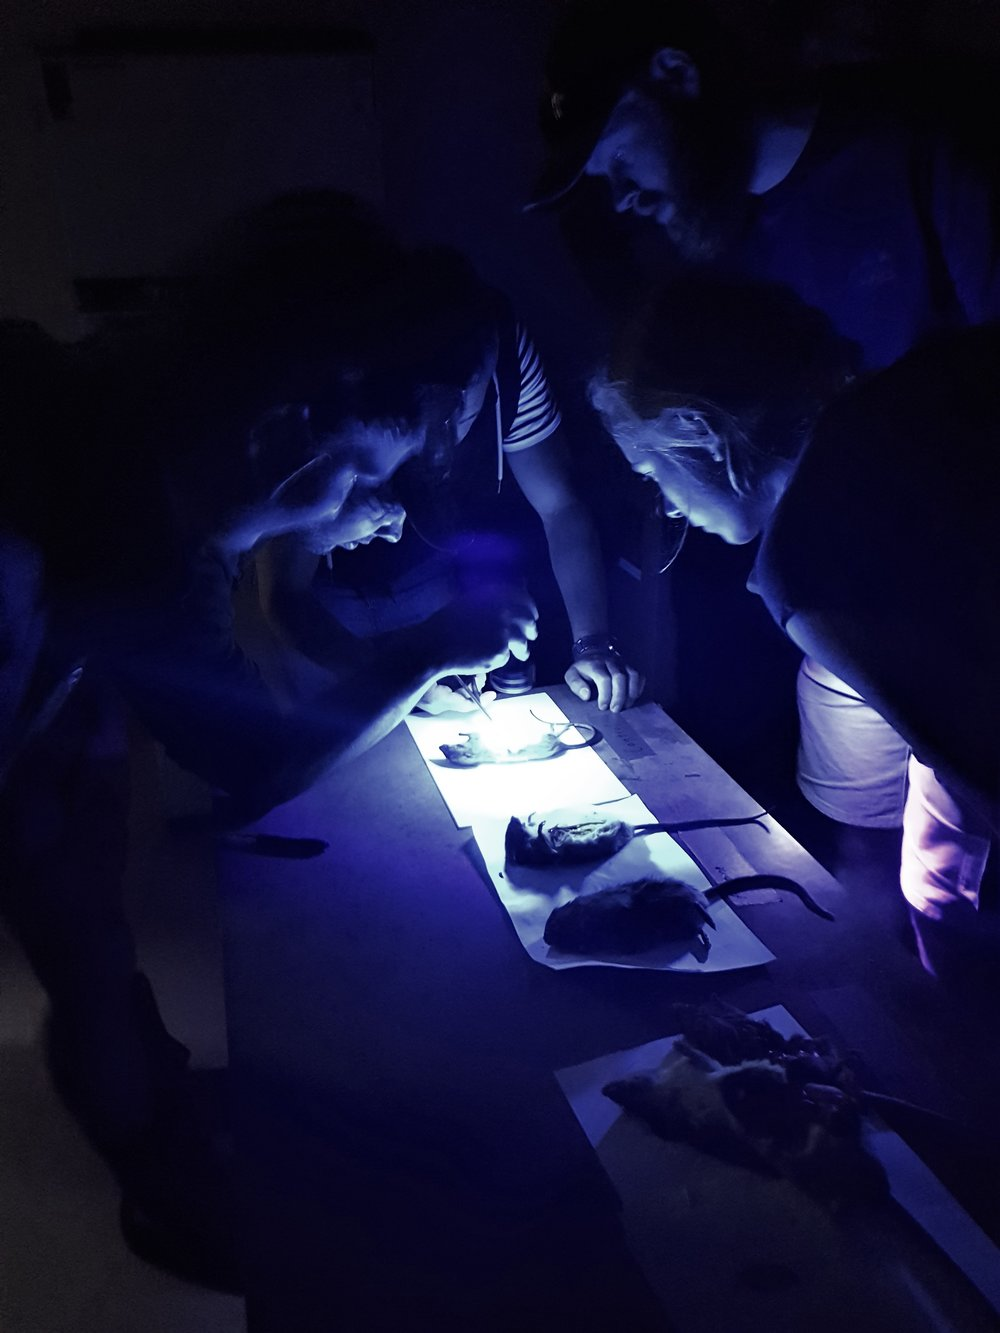 The Perth River valley field team examine rat carcasses for rhodamine B under ultraviolet light